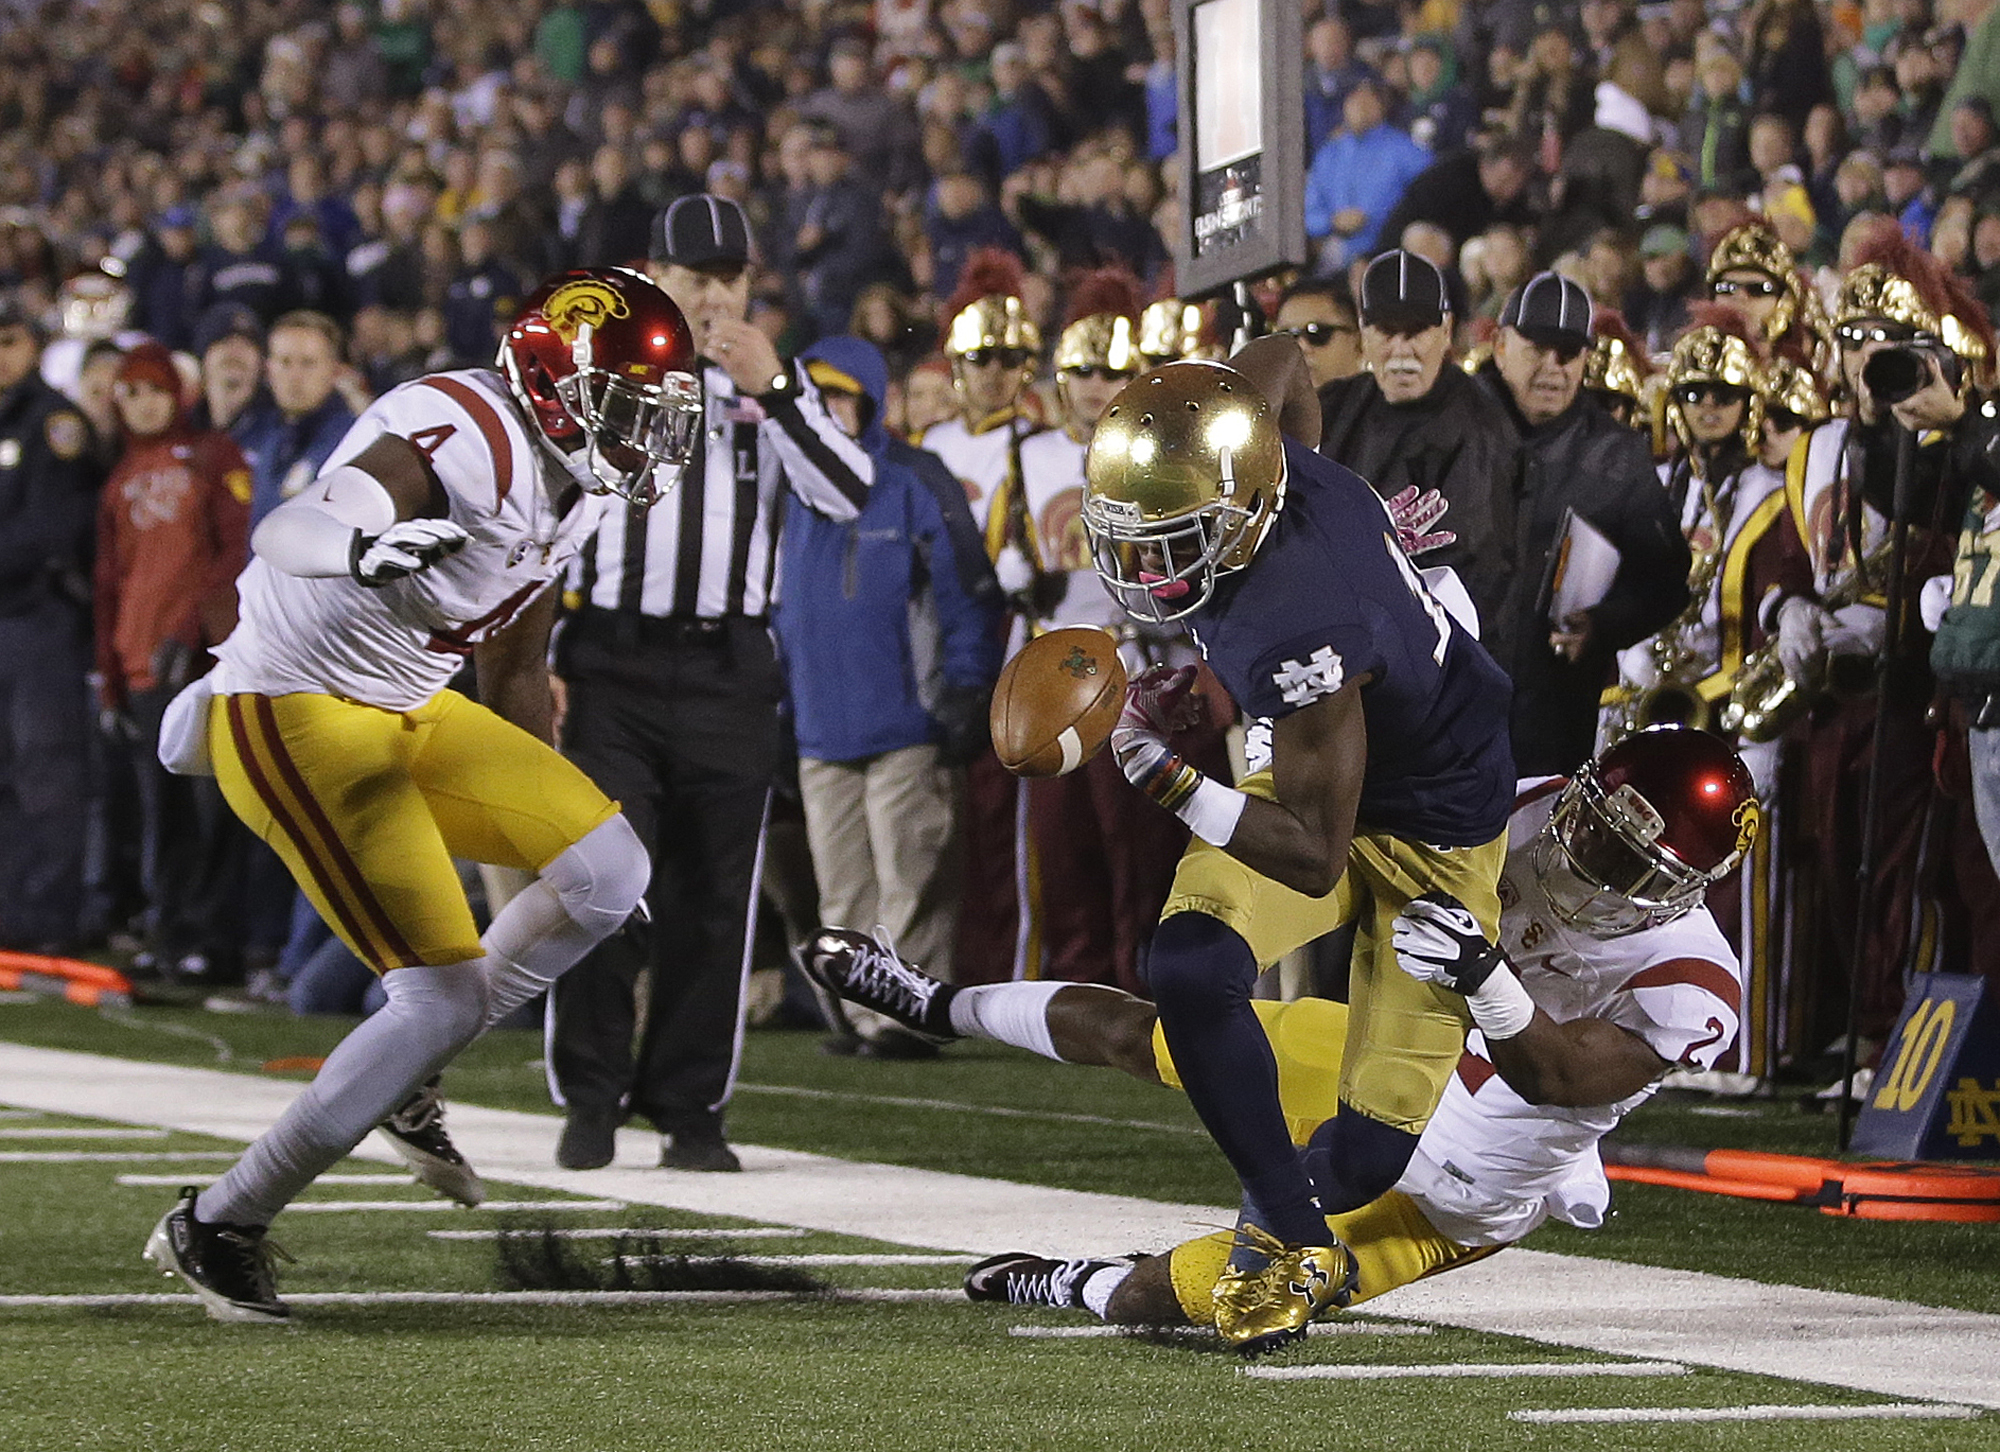 Notre Dame's Torii Hunter Jr. (16) fumbles as he is tackled by Southern California's Adoree' Jackson (2) during the first half of an NCAA college football game Saturday, Oct. 17, 2015, in South Bend, Ind.  Chris Hawkins (4) is at left. (AP Photo/Darron Cu